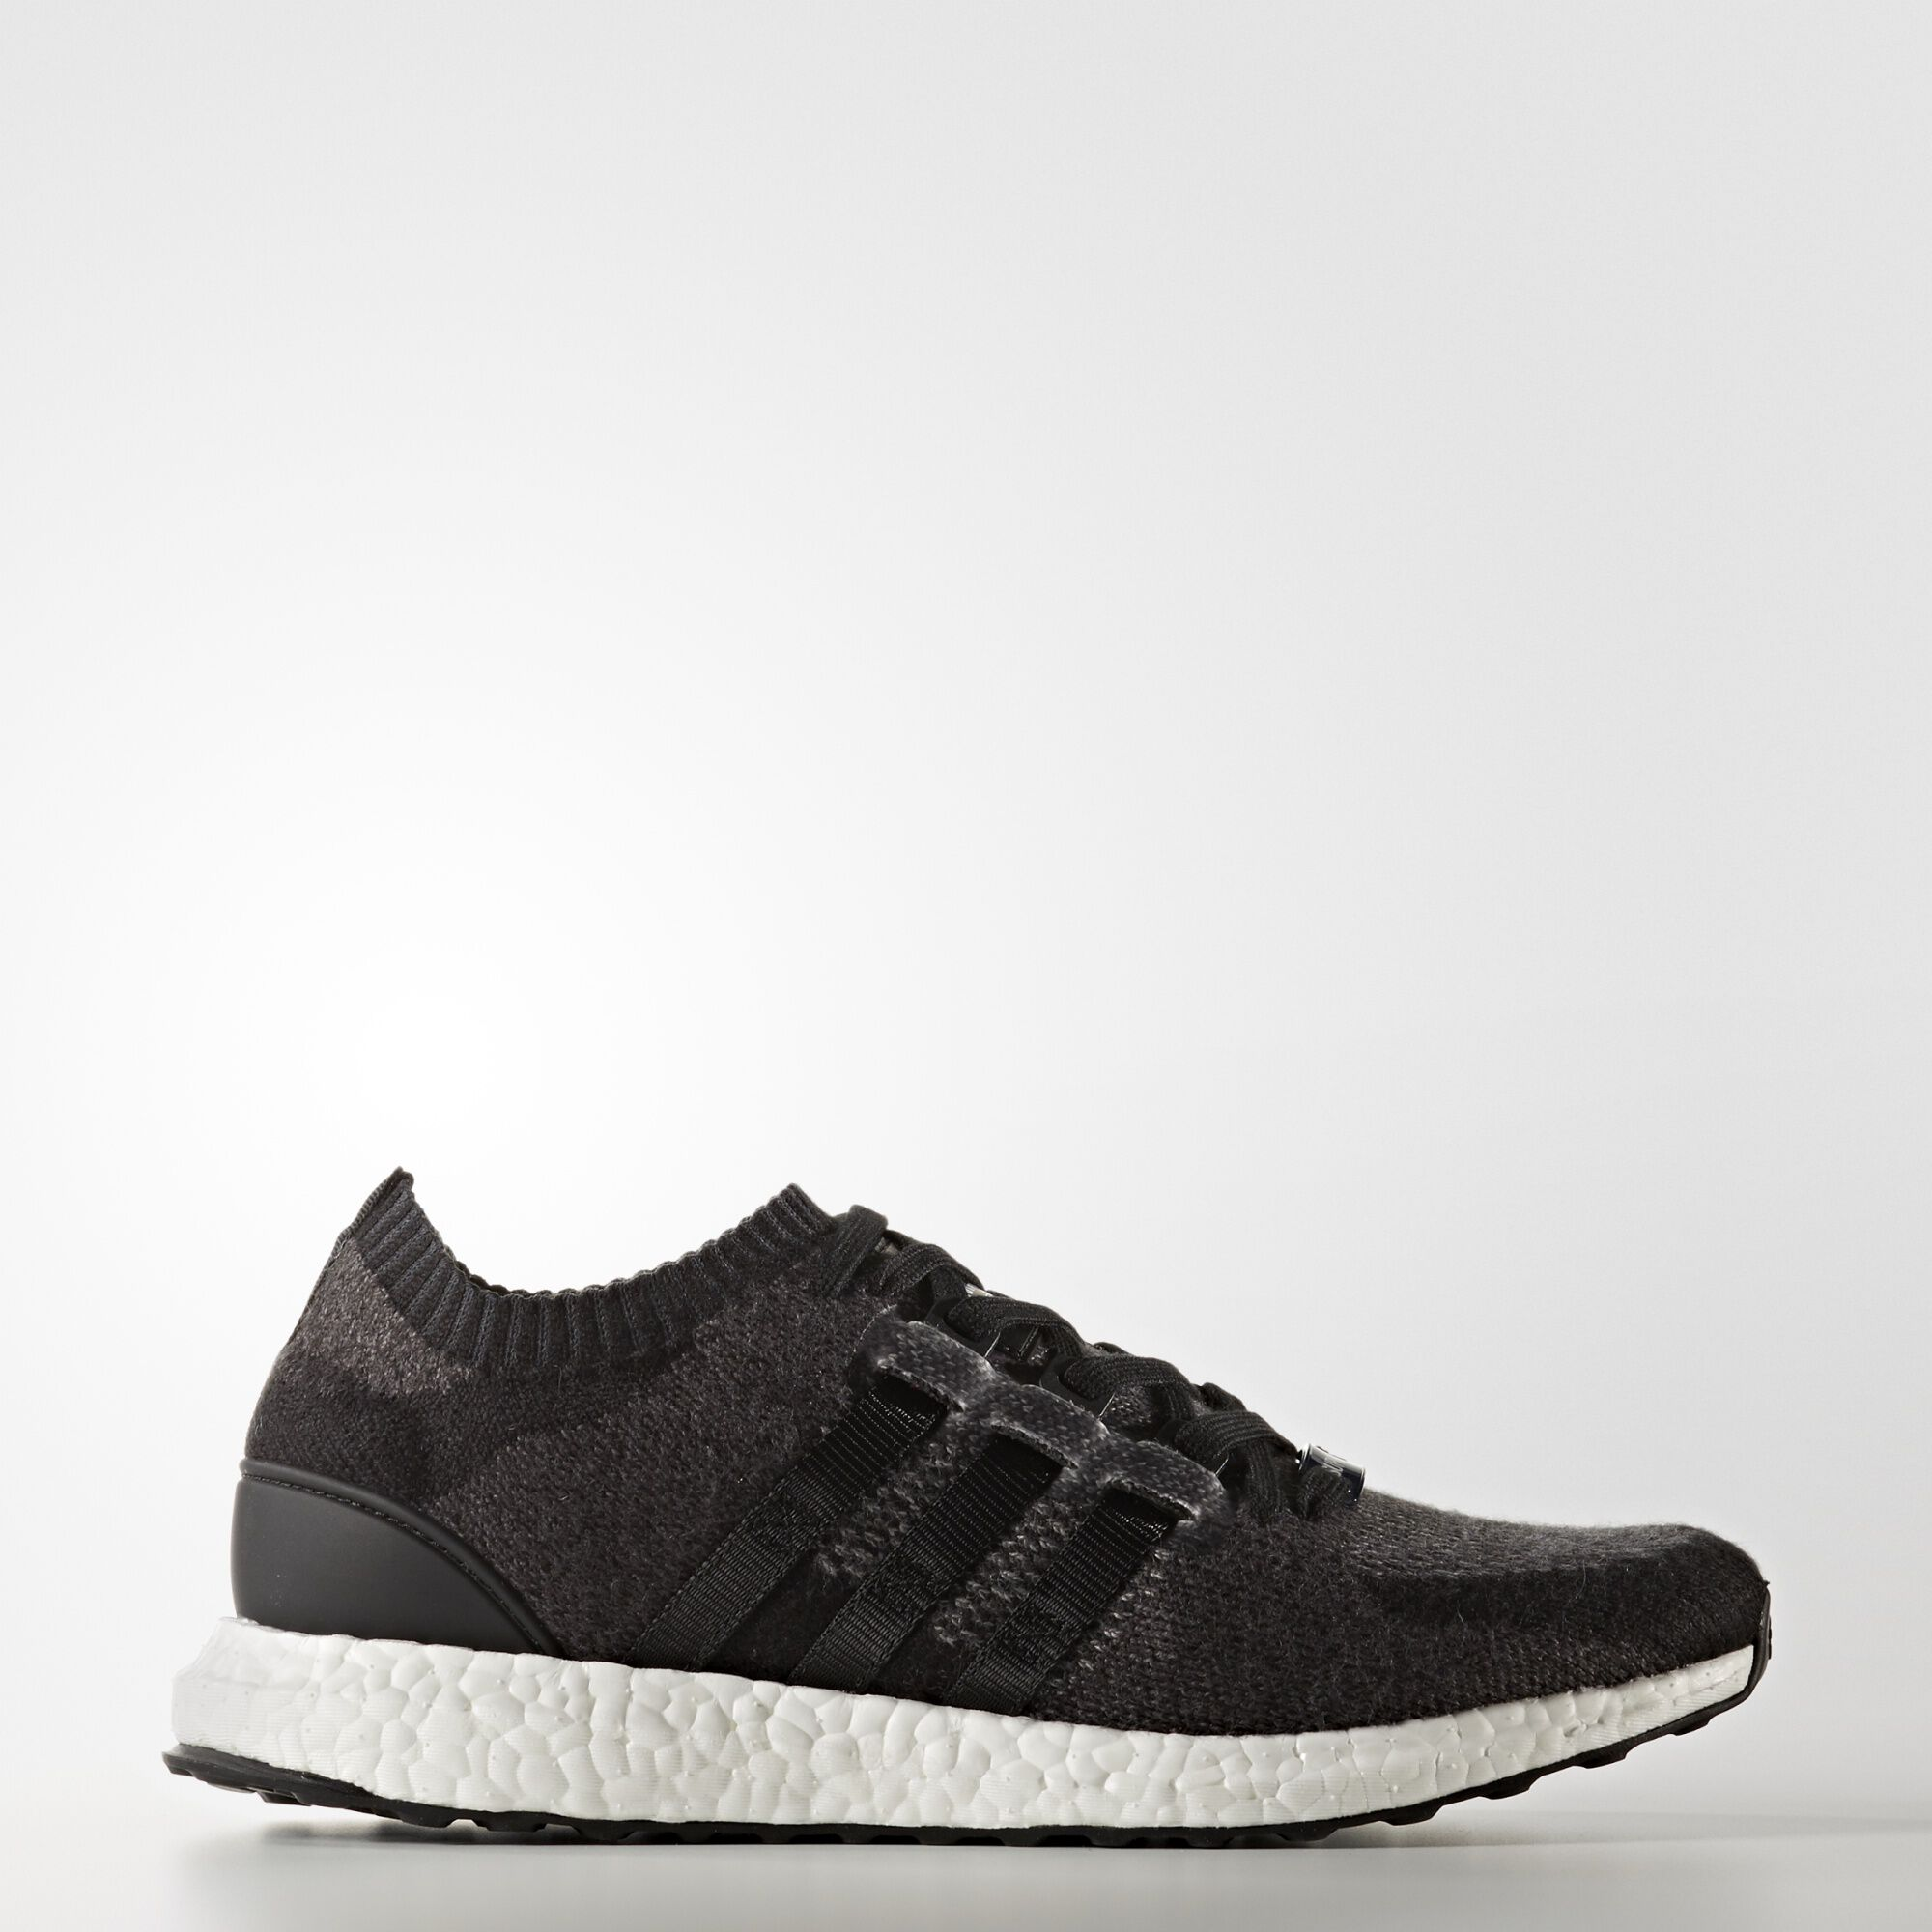 Adidas Men EQT Support RF black core black turbo red Bait